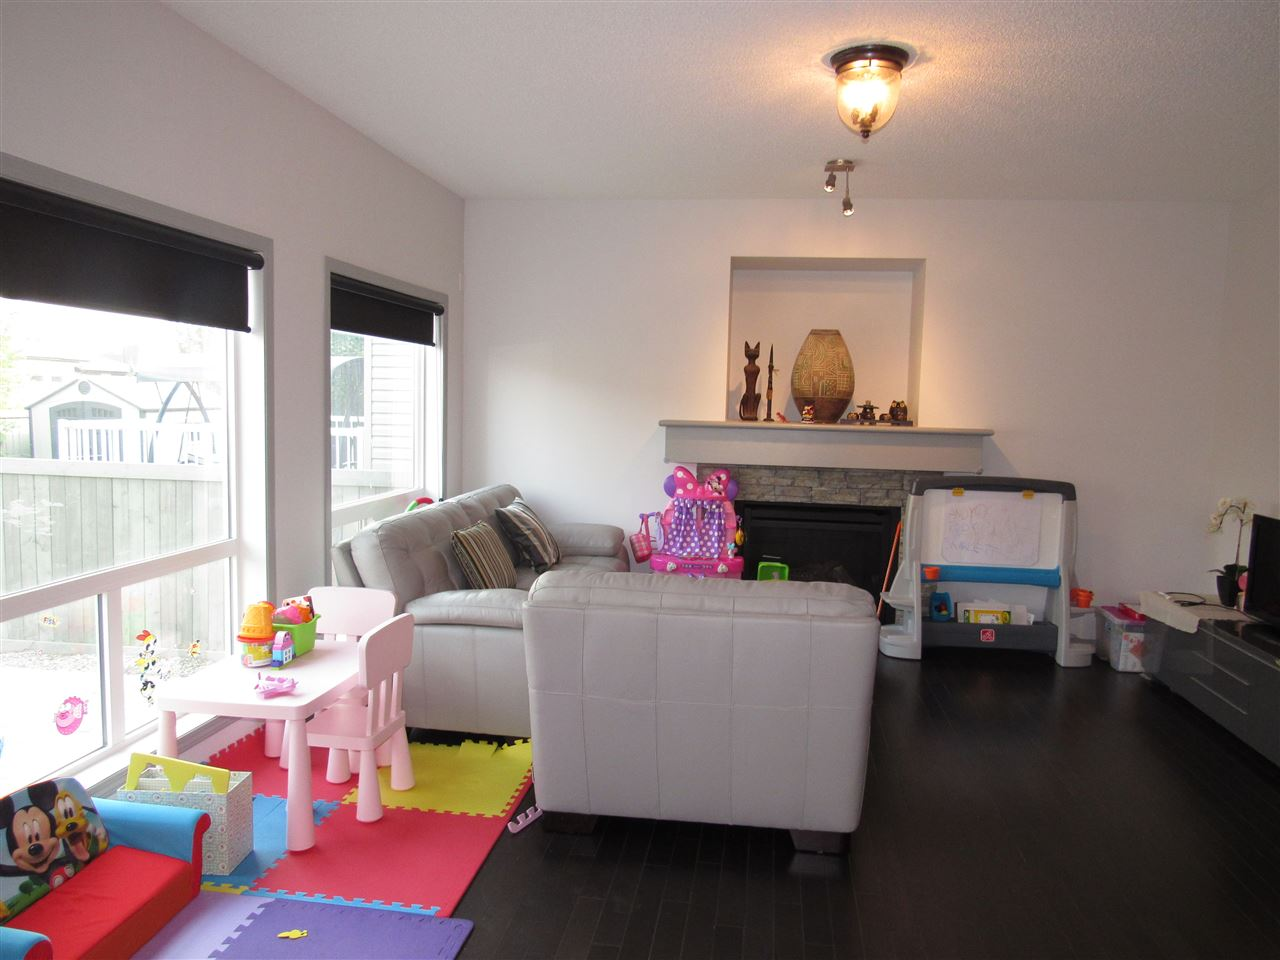 Photo 5: 1020 CONNELLY Way in Edmonton: Zone 55 House for sale : MLS® # E4075955